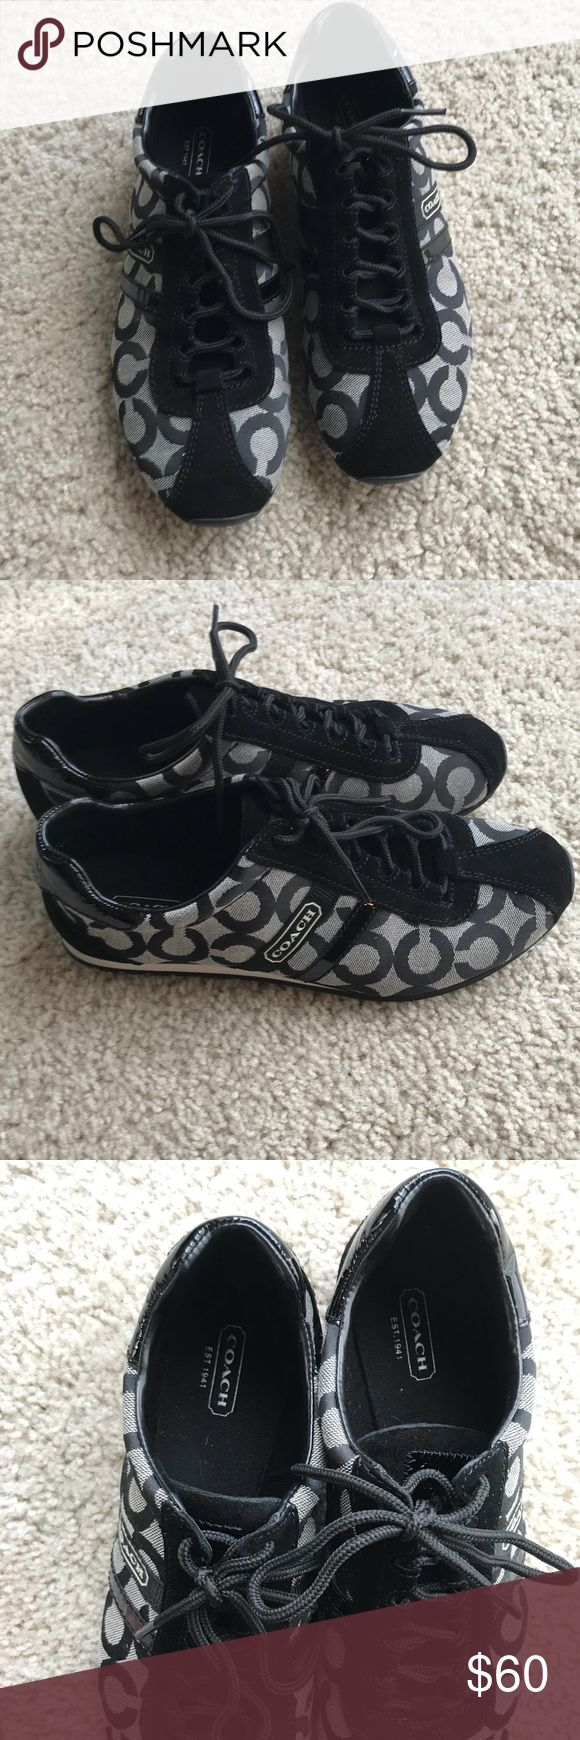 Coach tennis shoes in black Coach tennis shoes, worn once. Adorable with jeans and a blouse or dress up some leggings and a hoodie in these casual and comfy designer tennis shoes! Coach Shoes Athletic Shoes